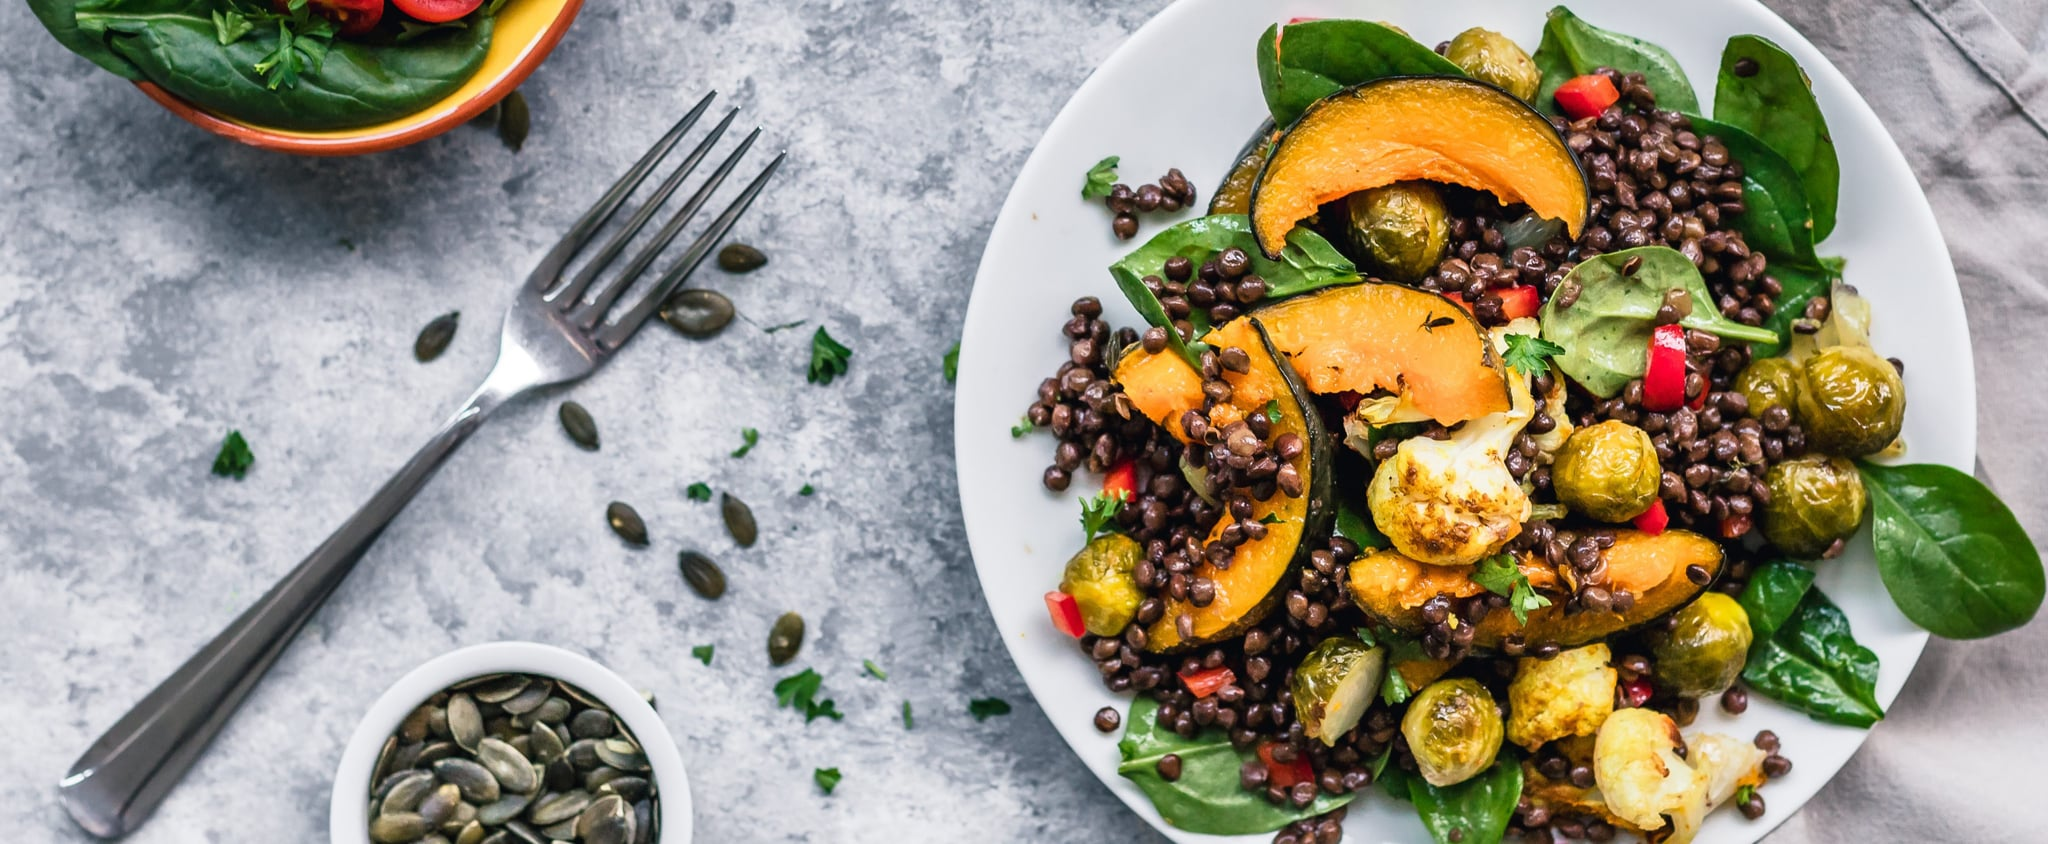 What Is the Planet Diet?